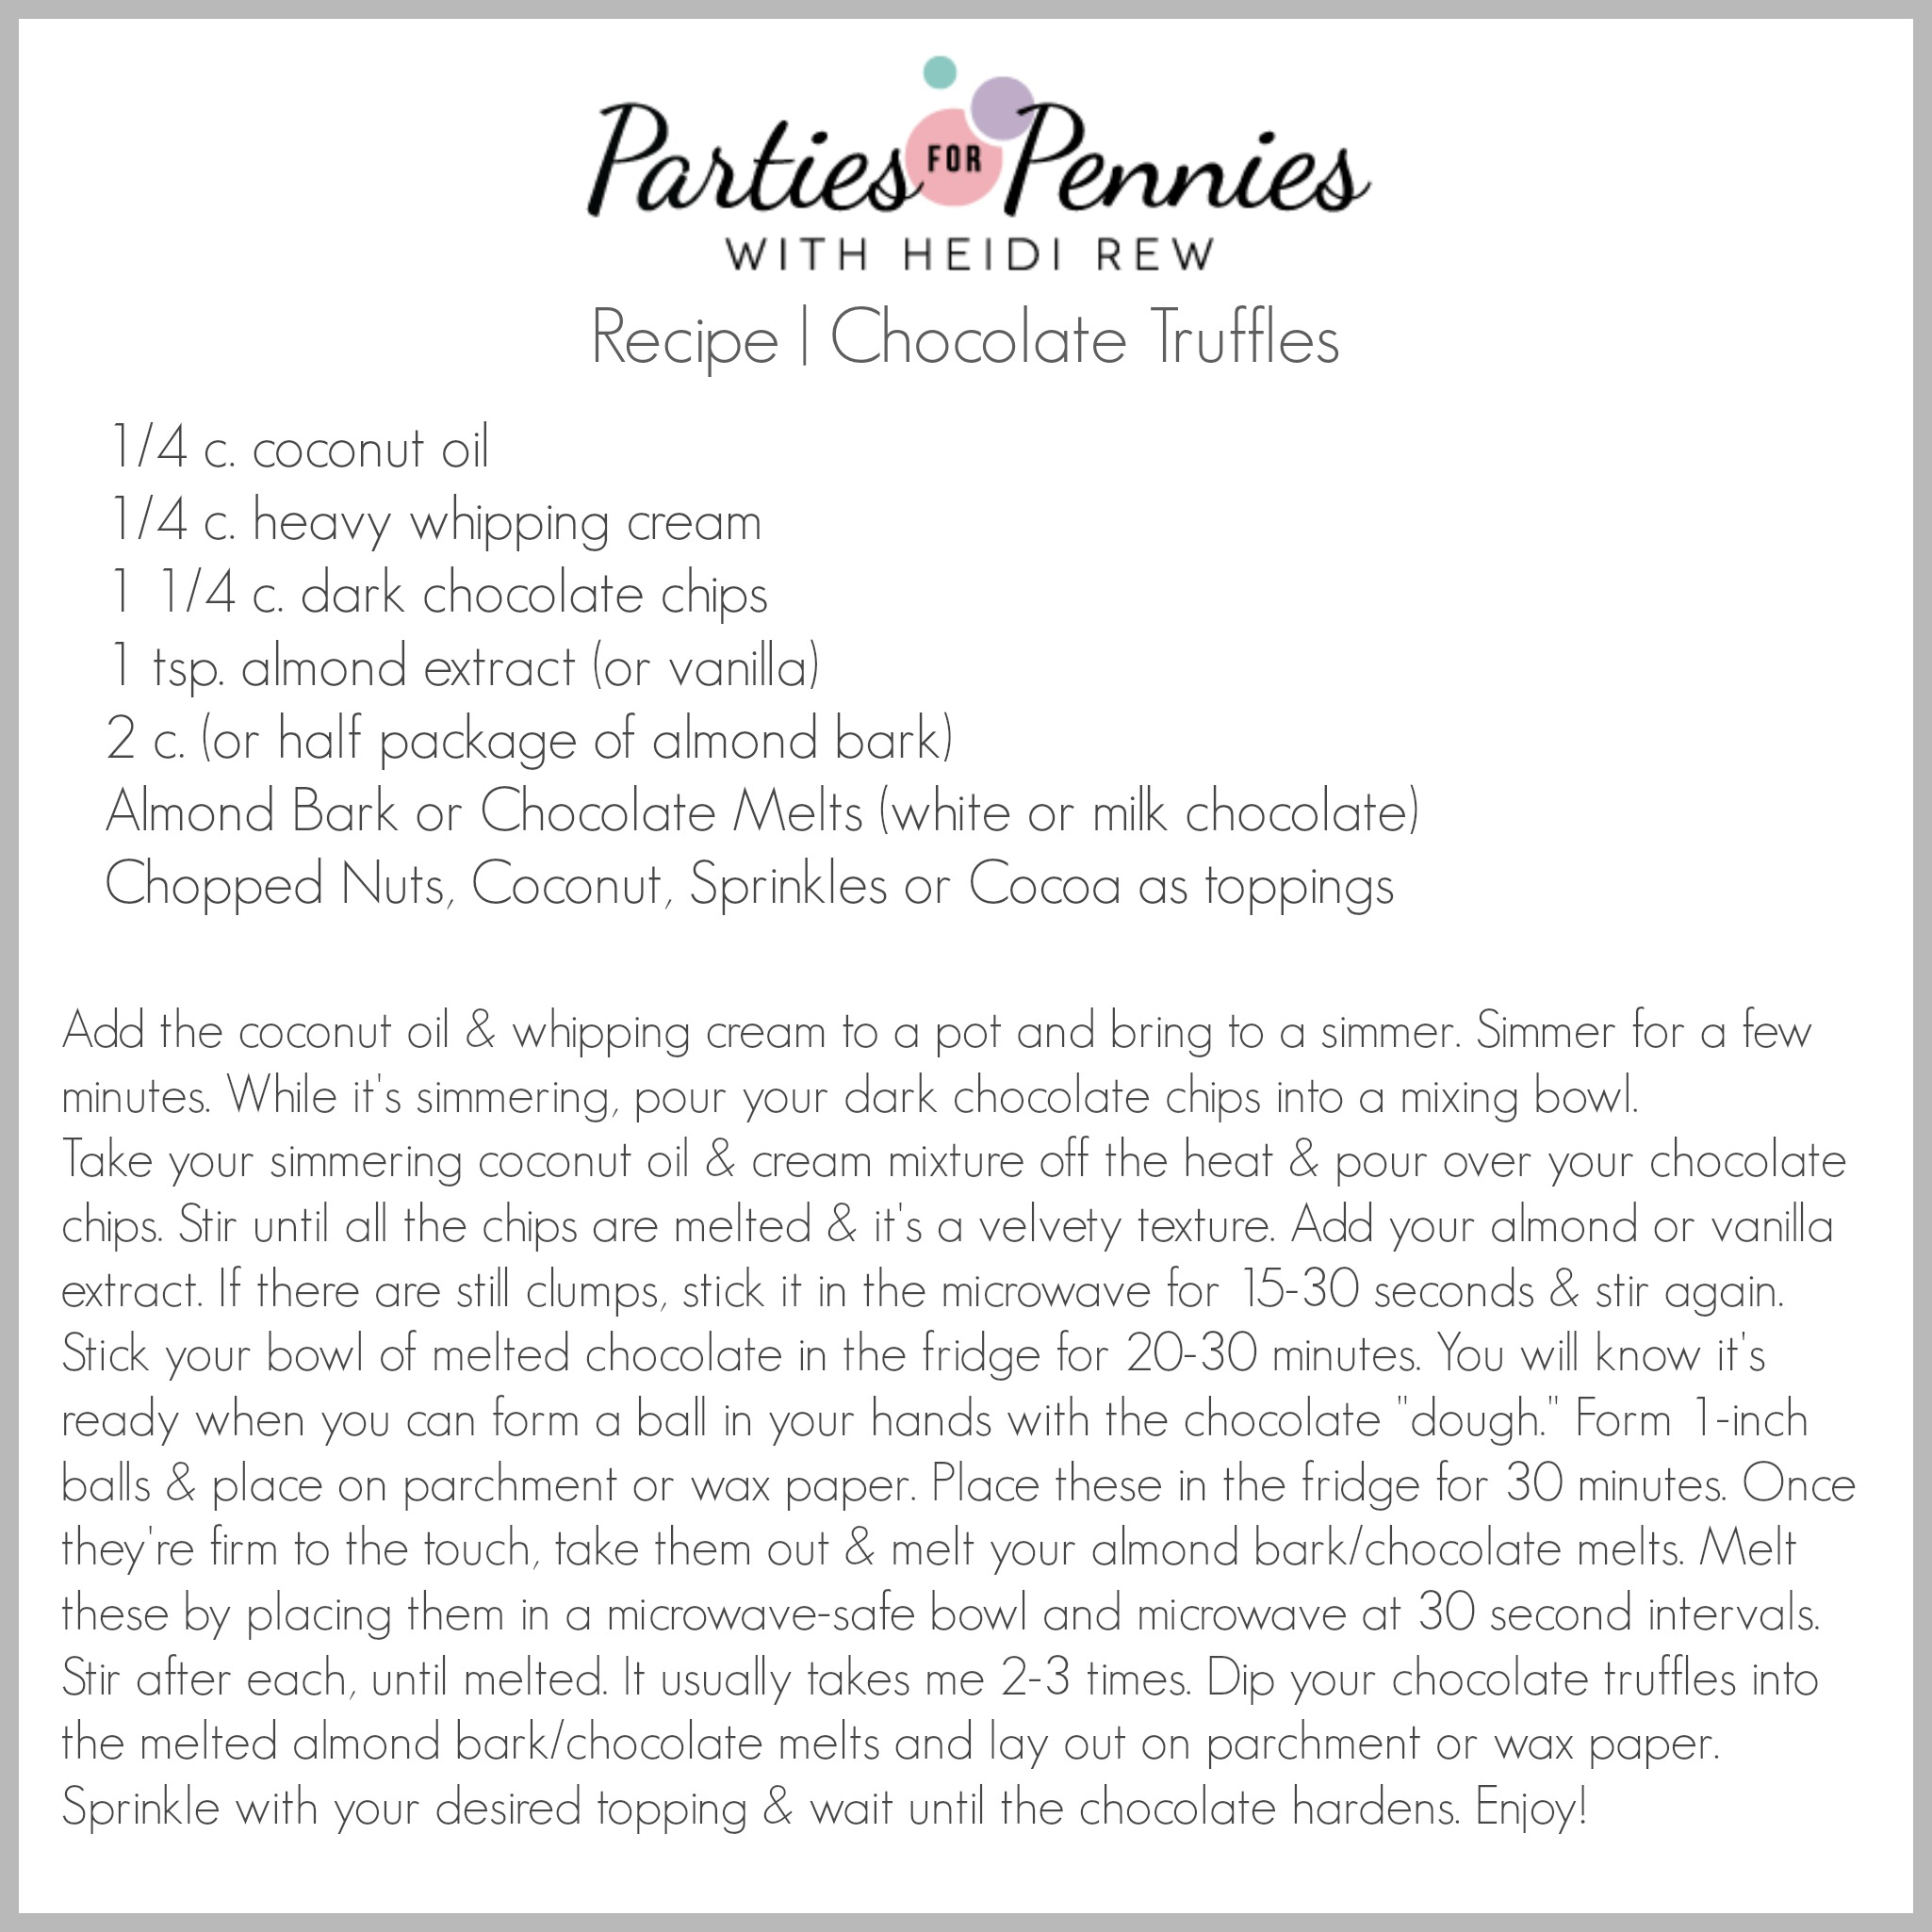 Homemade Chocolate Truffles - Recipe Card